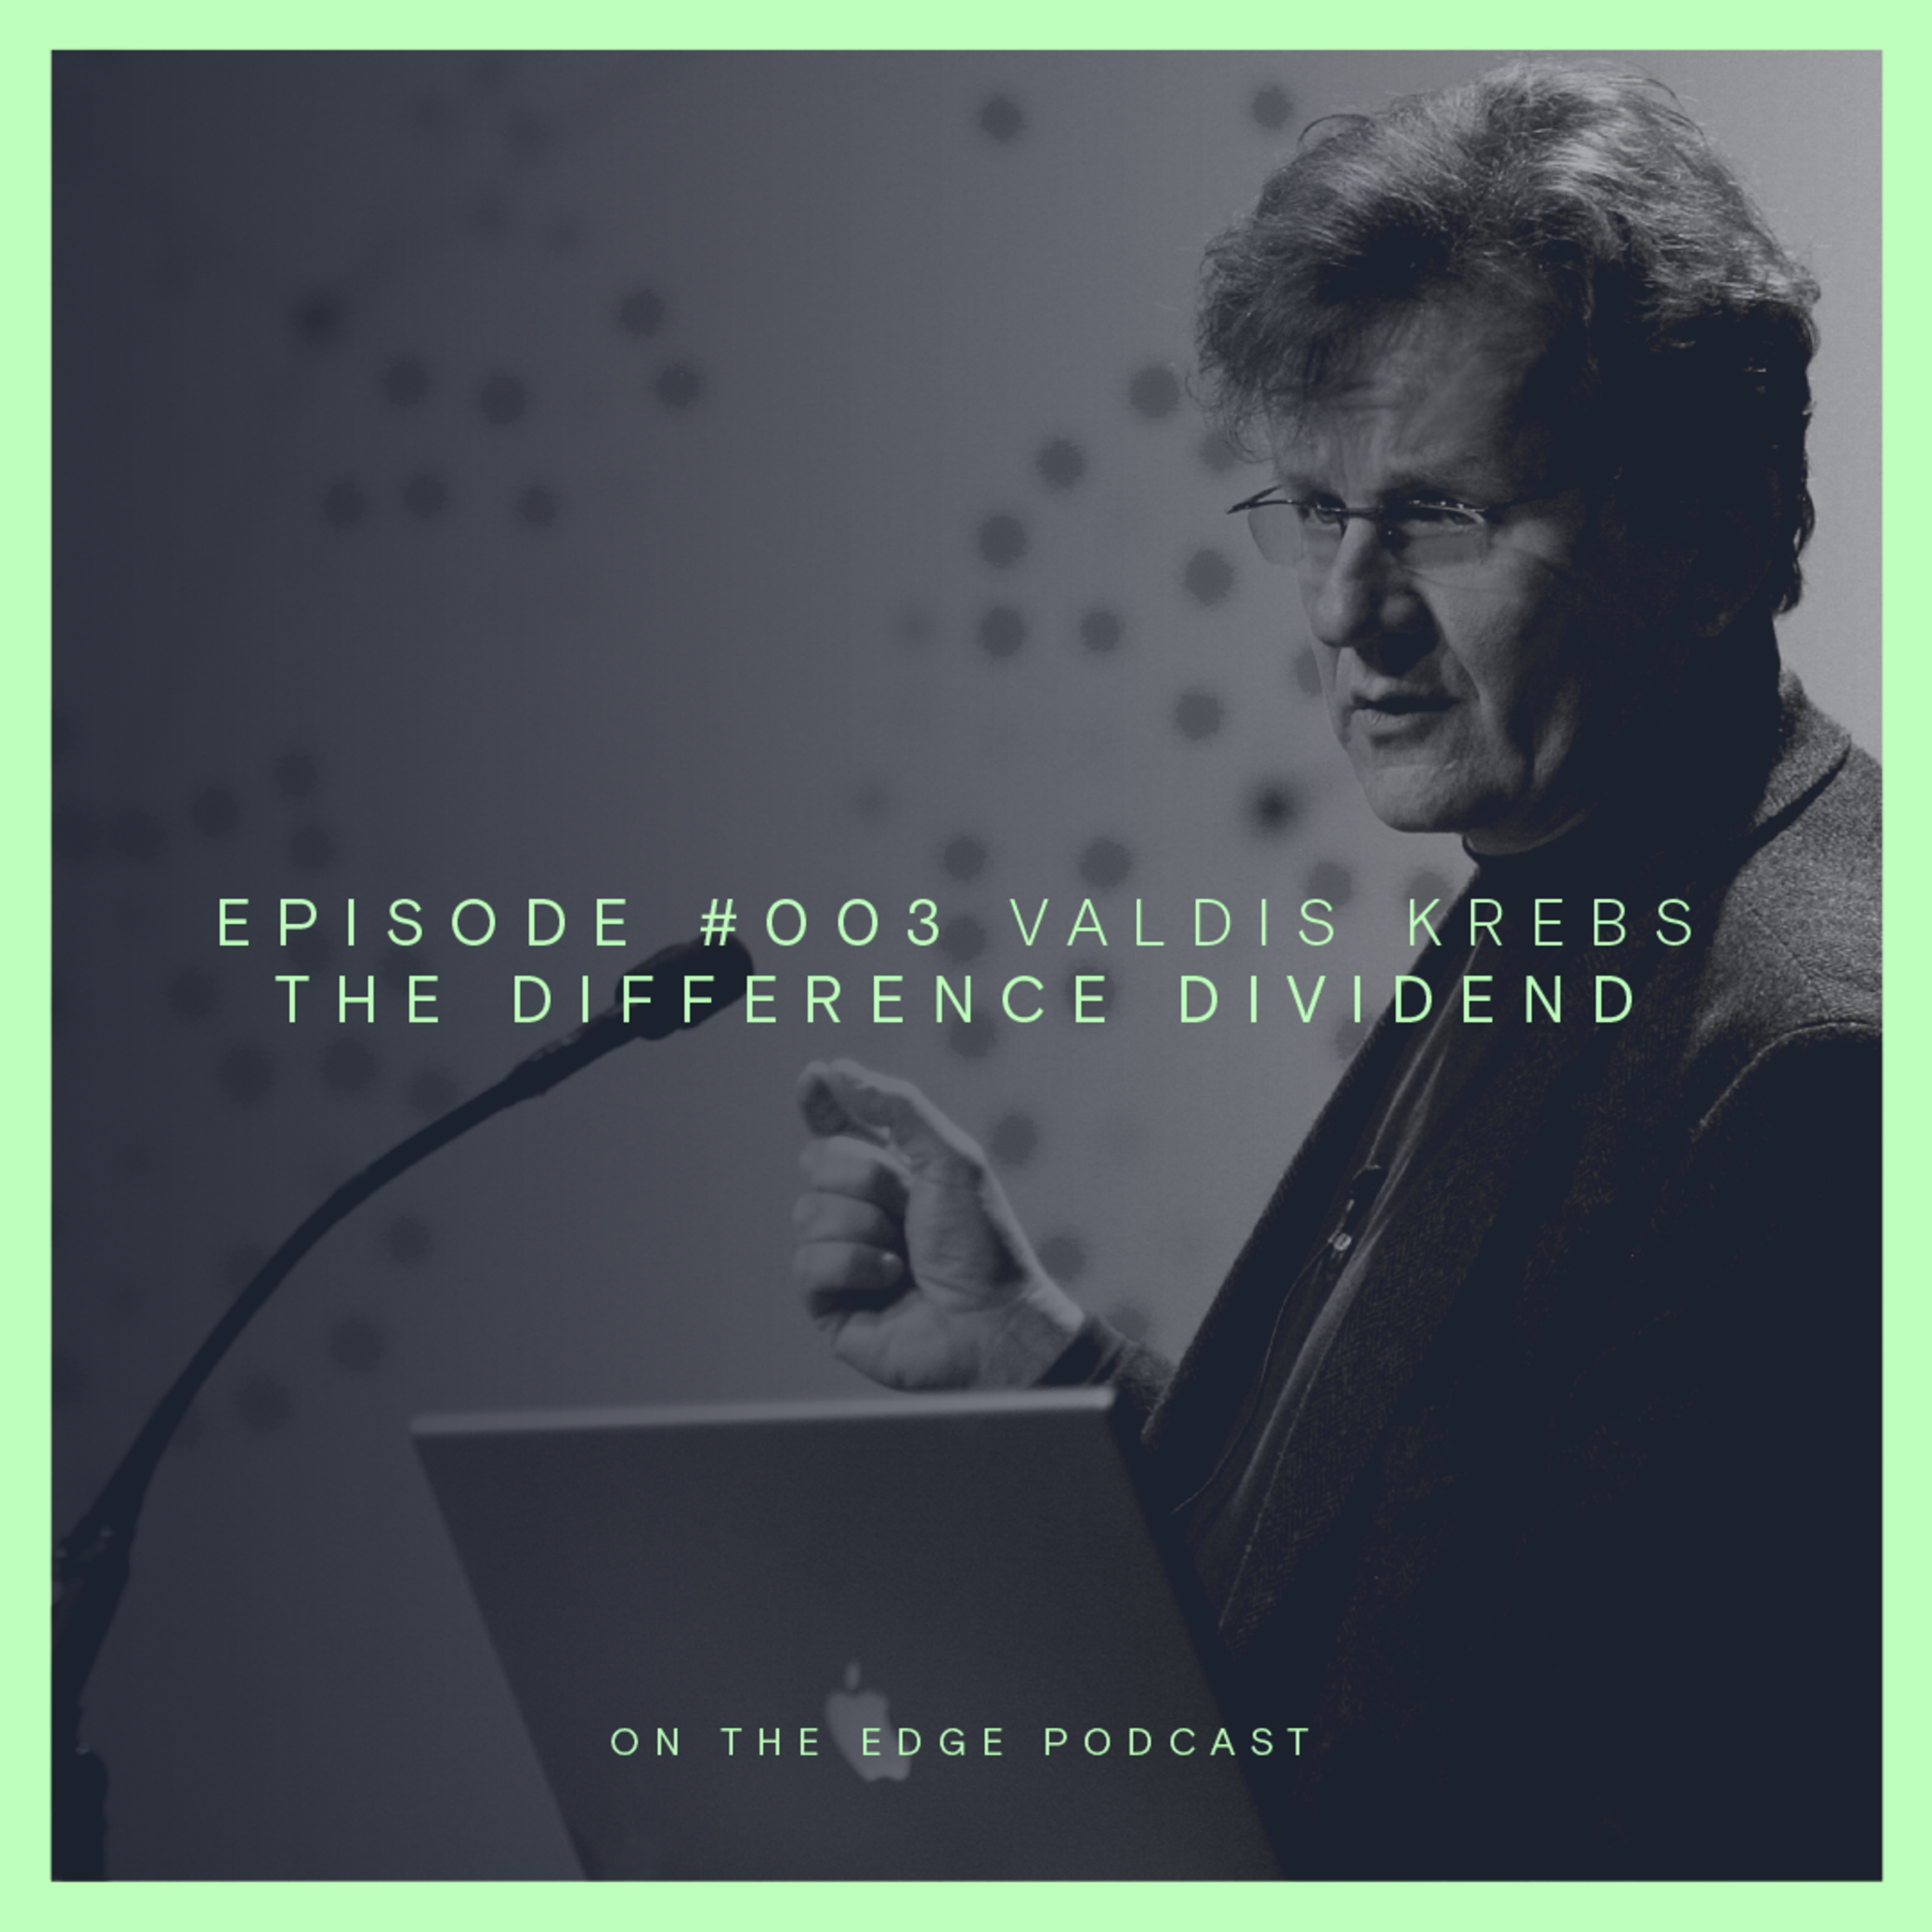 #003 The Difference Dividend - Valdis Krebs